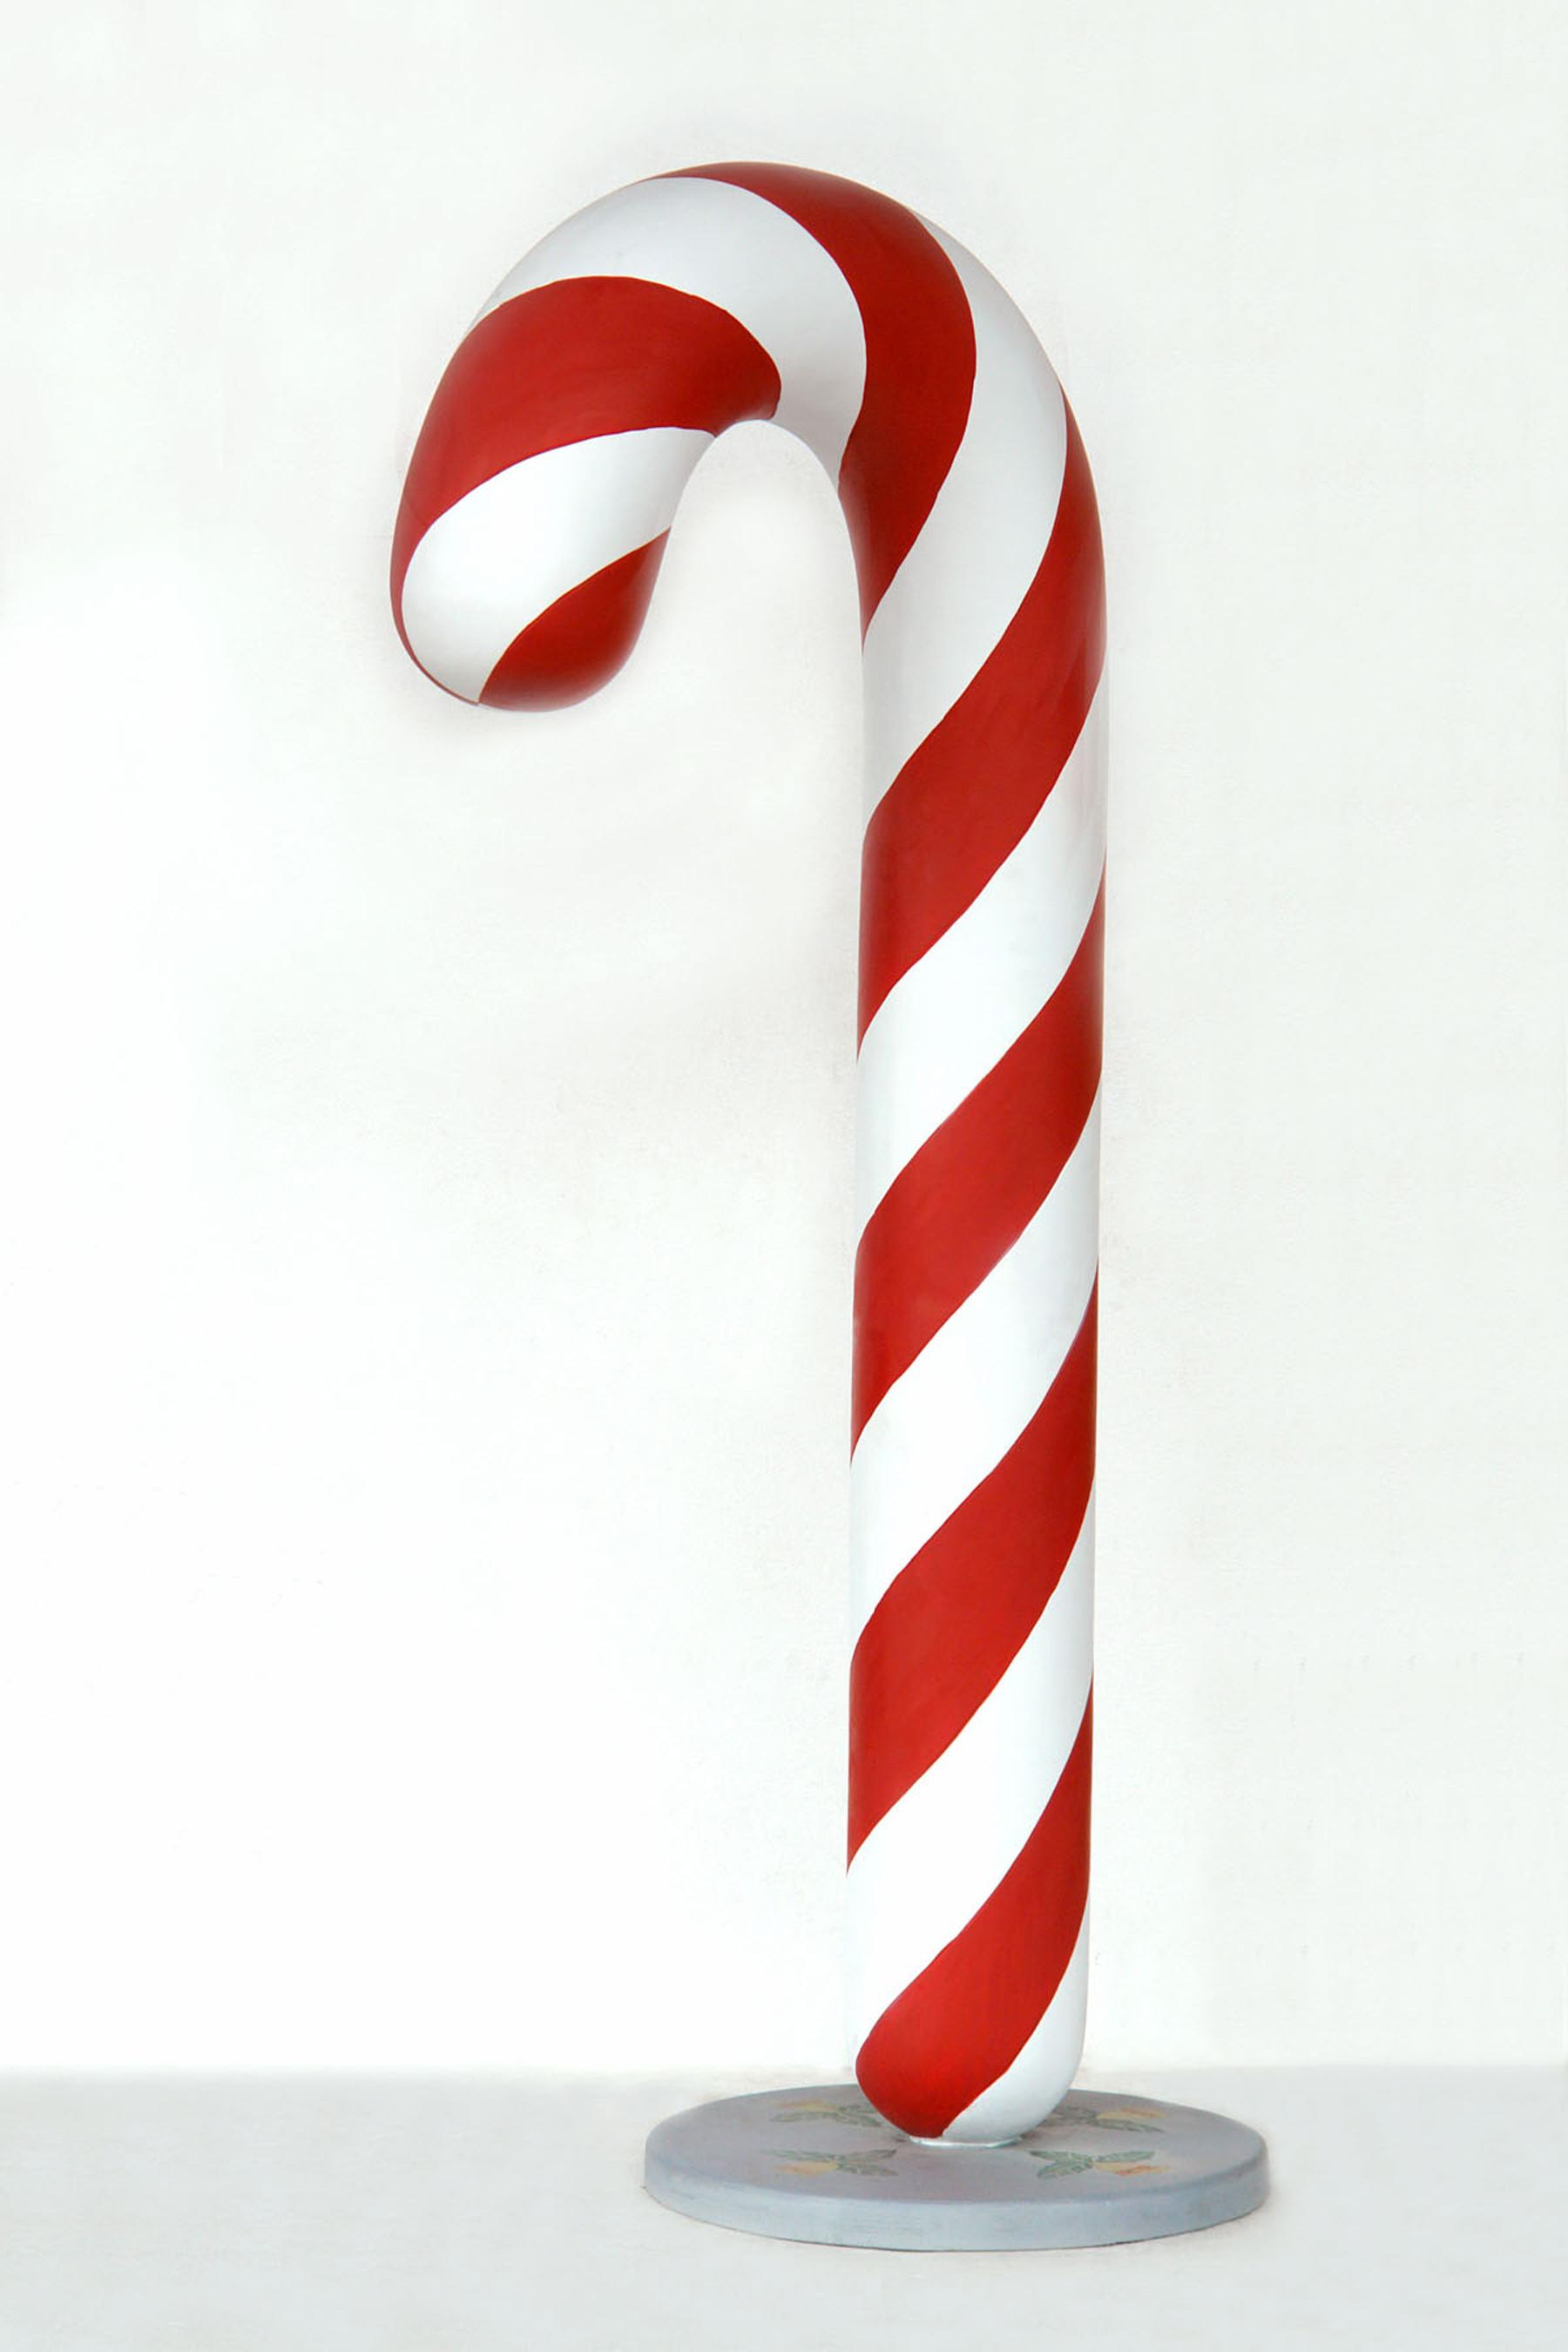 7' Ft Candy Cane